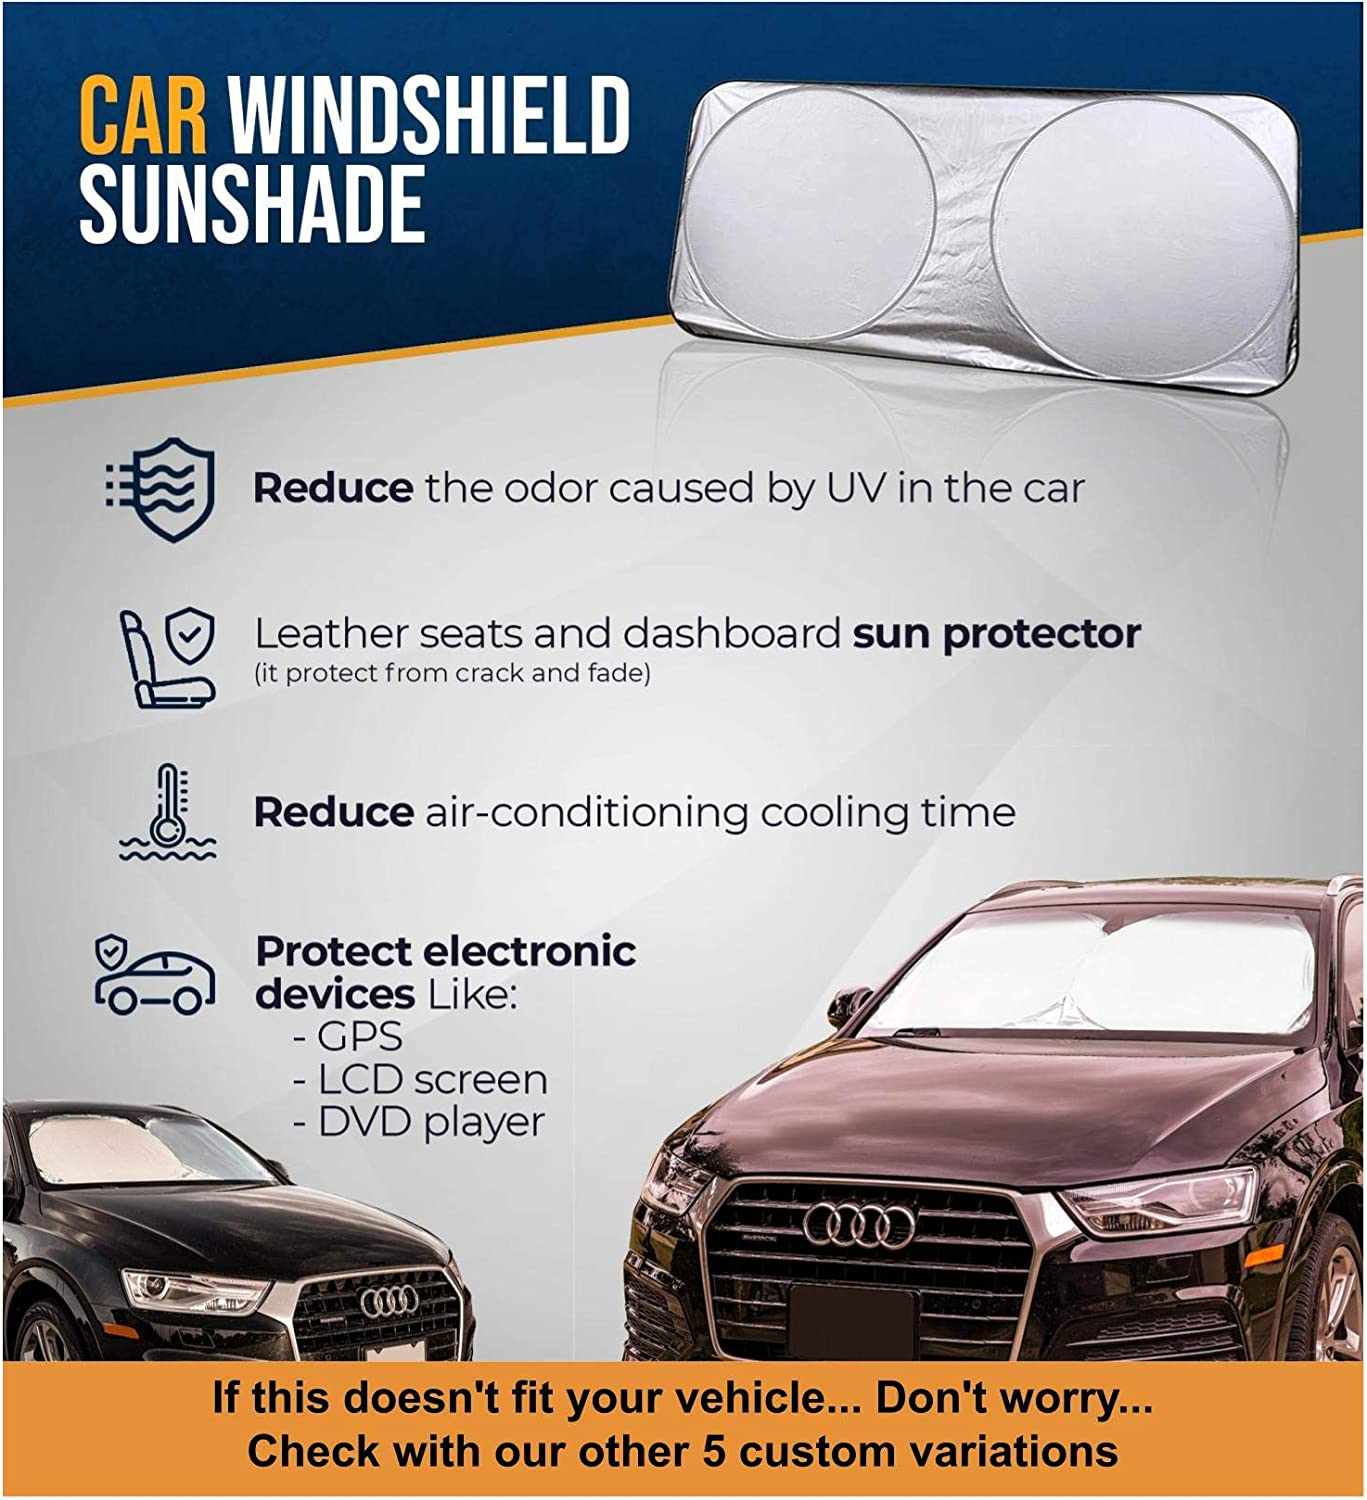 Sunshade to Keep Your Vehicle Cool and Damage Free,Easy to Use,Fits Windshields of Various Size X-Small 59 x 19 inches EcoNour Car Windshield Sun Shade Blocks UV Rays Sun Visor Protector